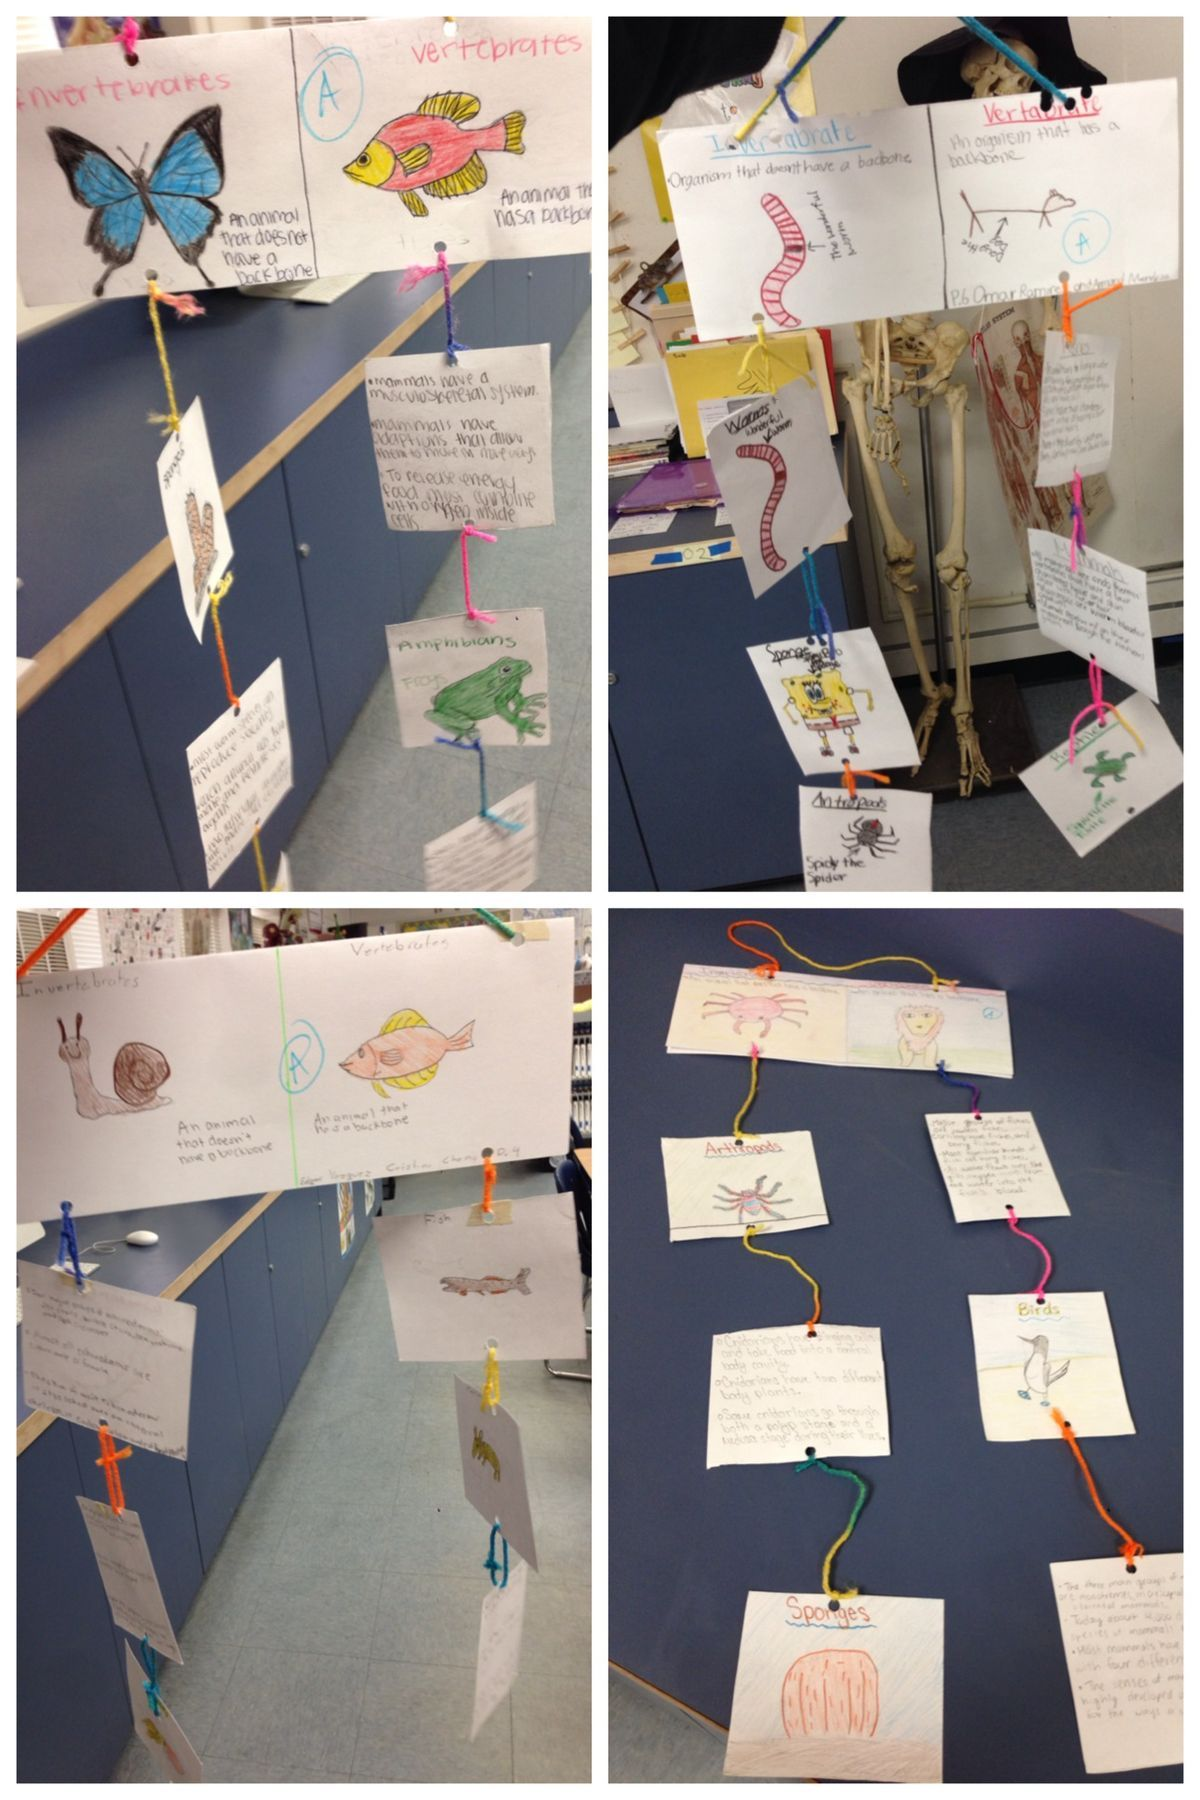 Vertebrates Invertebrates Mobile Cc Cycle 1